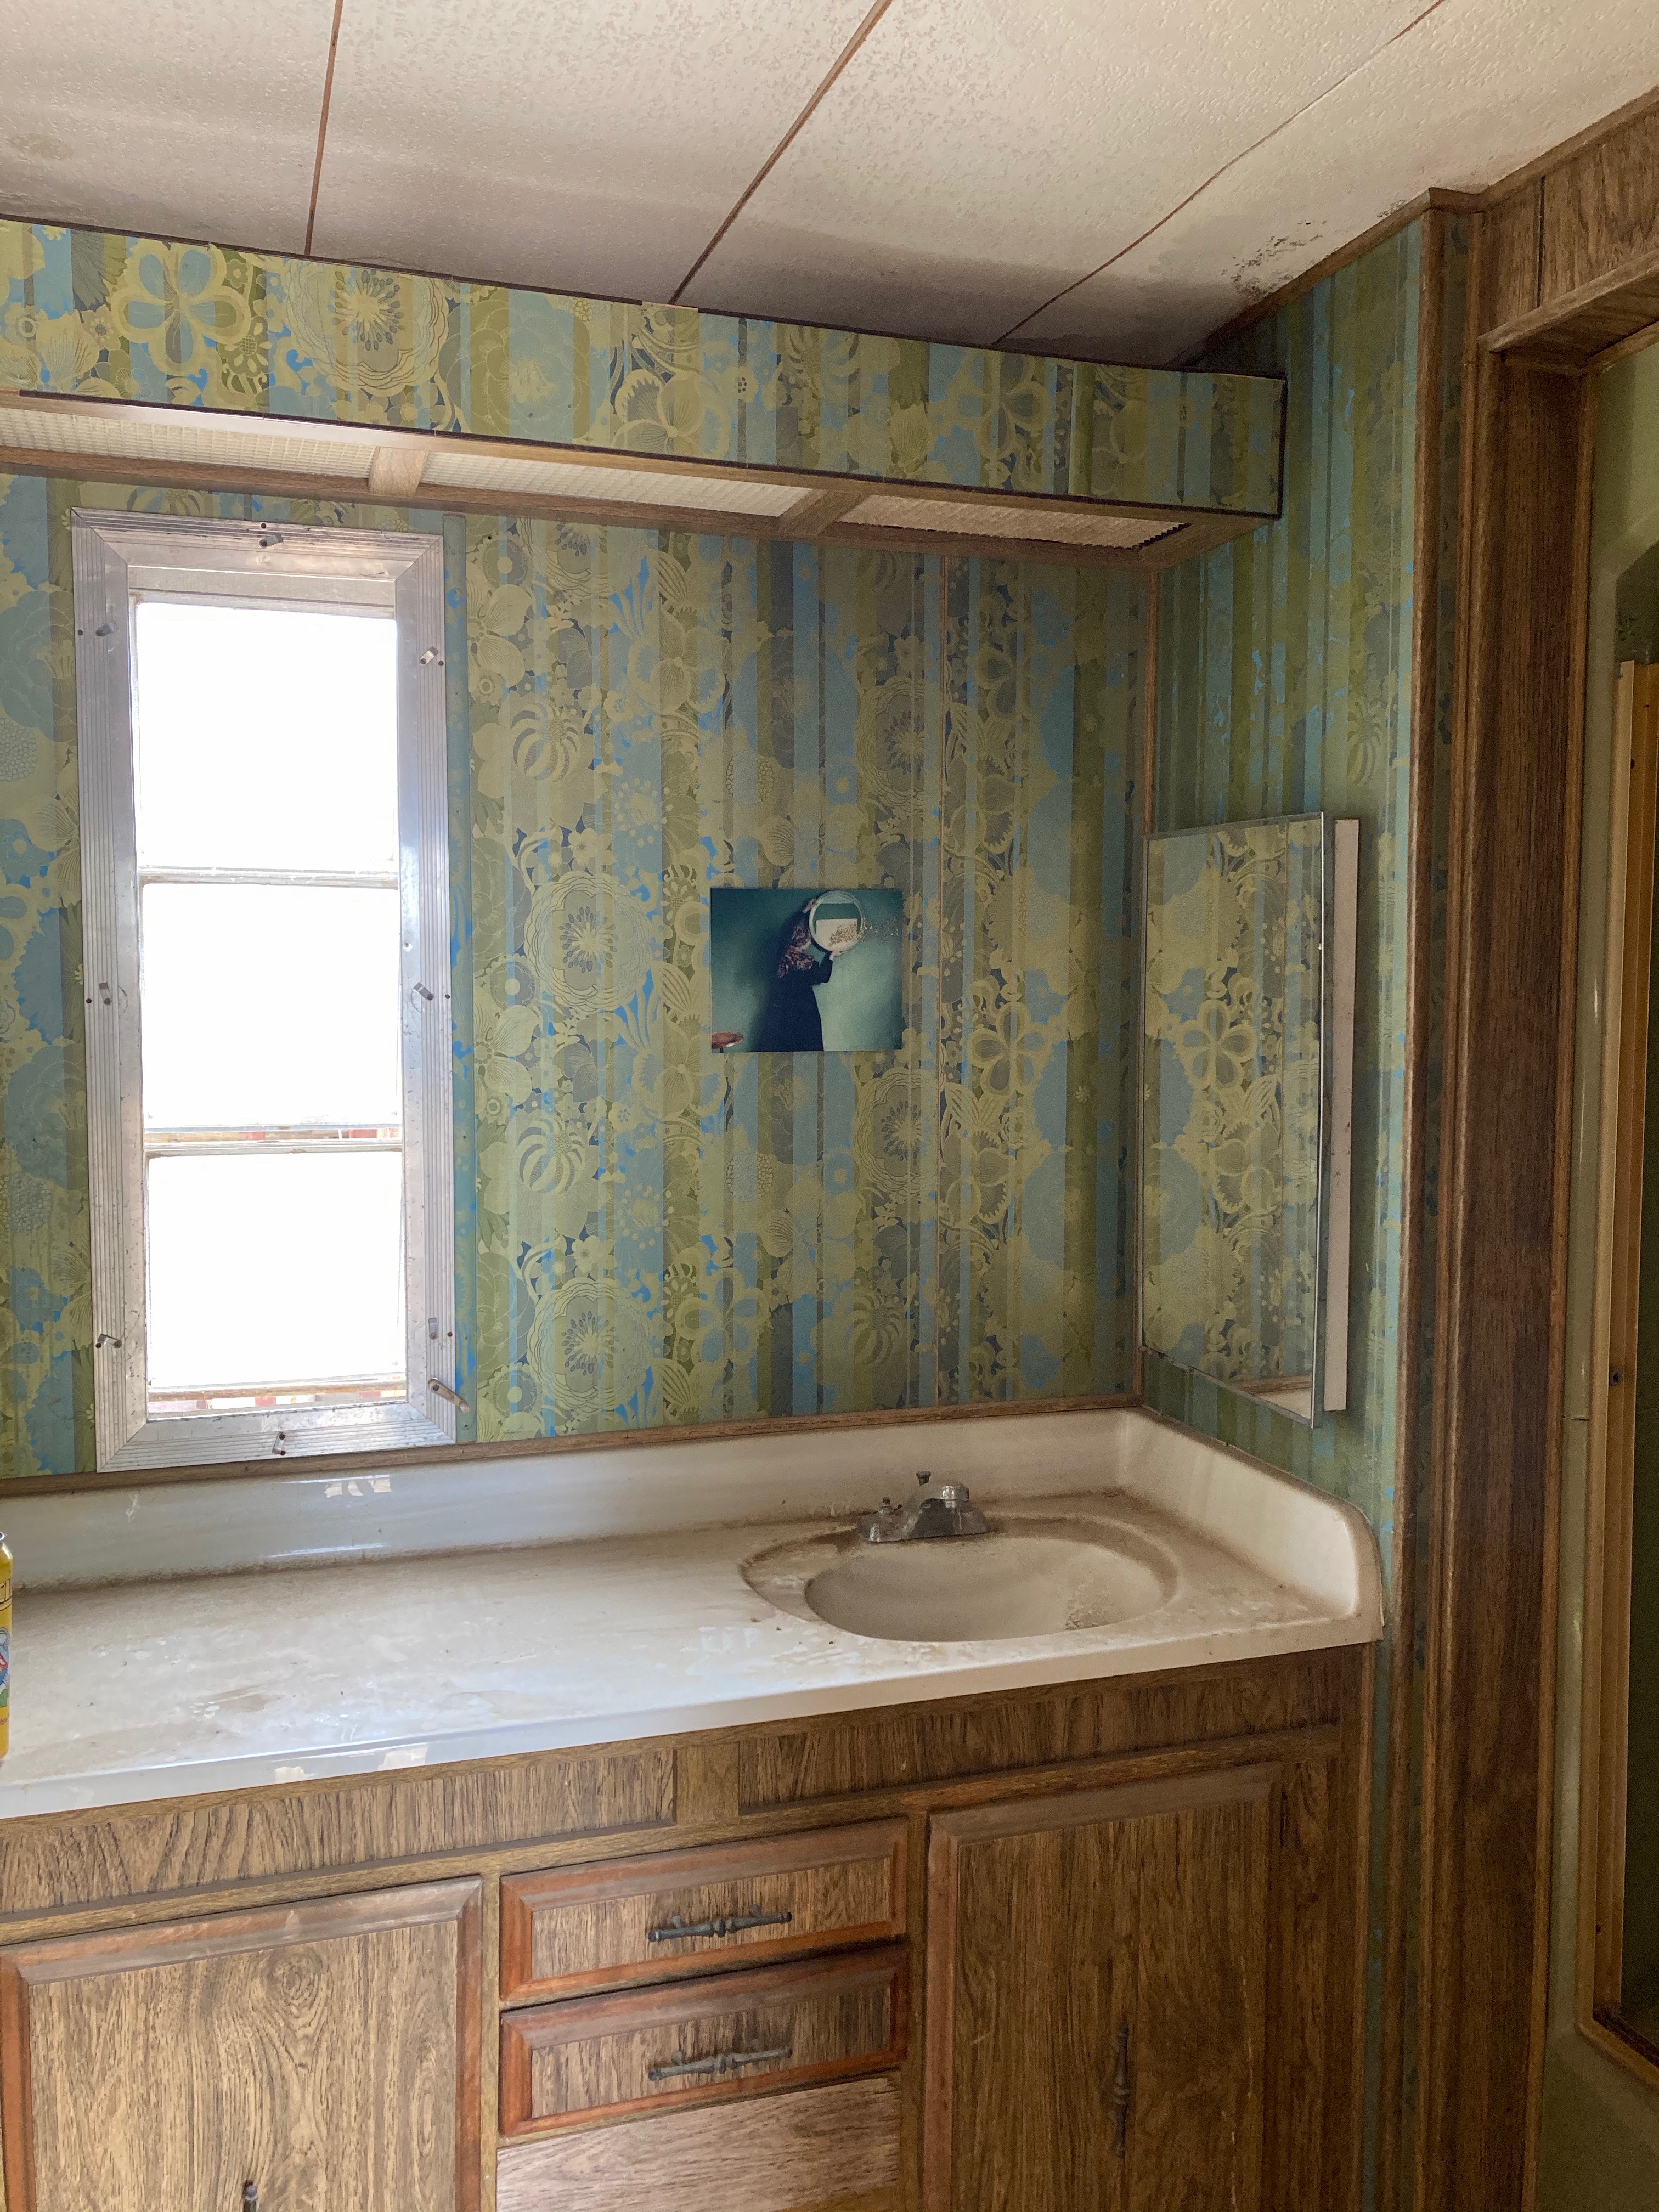 a decaying yet opulently wallpapered trailer bathroom